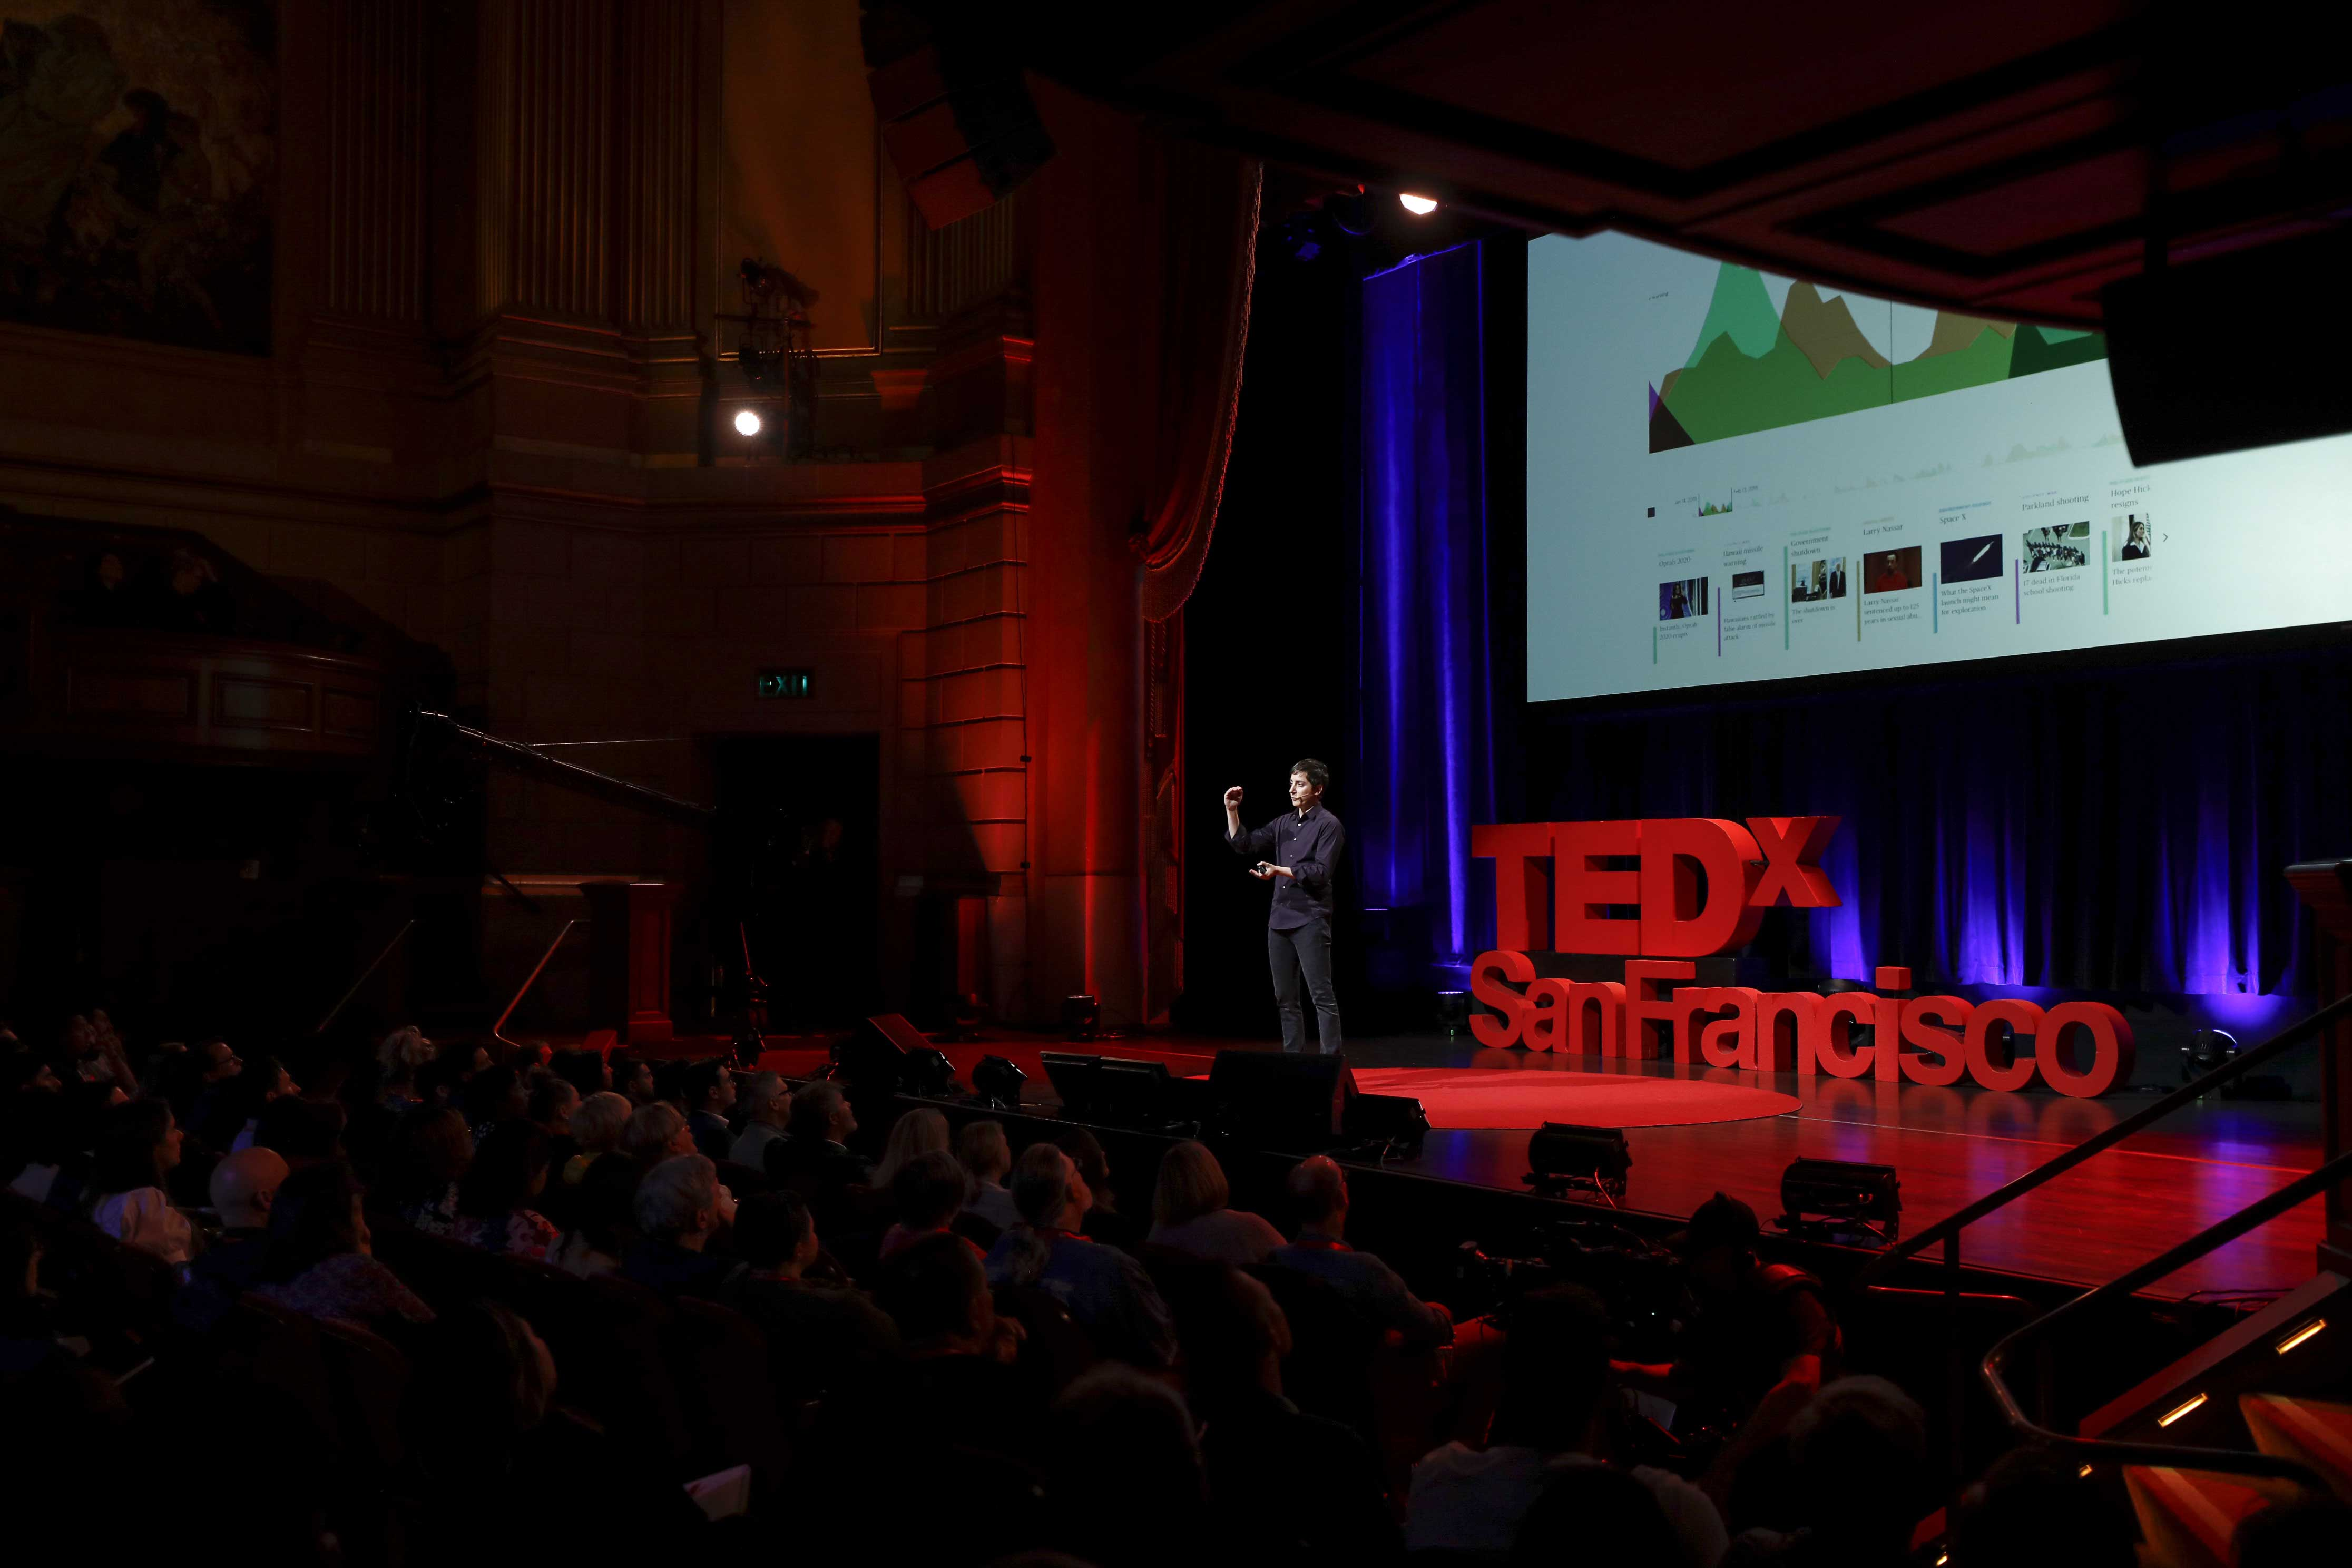 Miss Us at TEDx? Watch the Talk Online